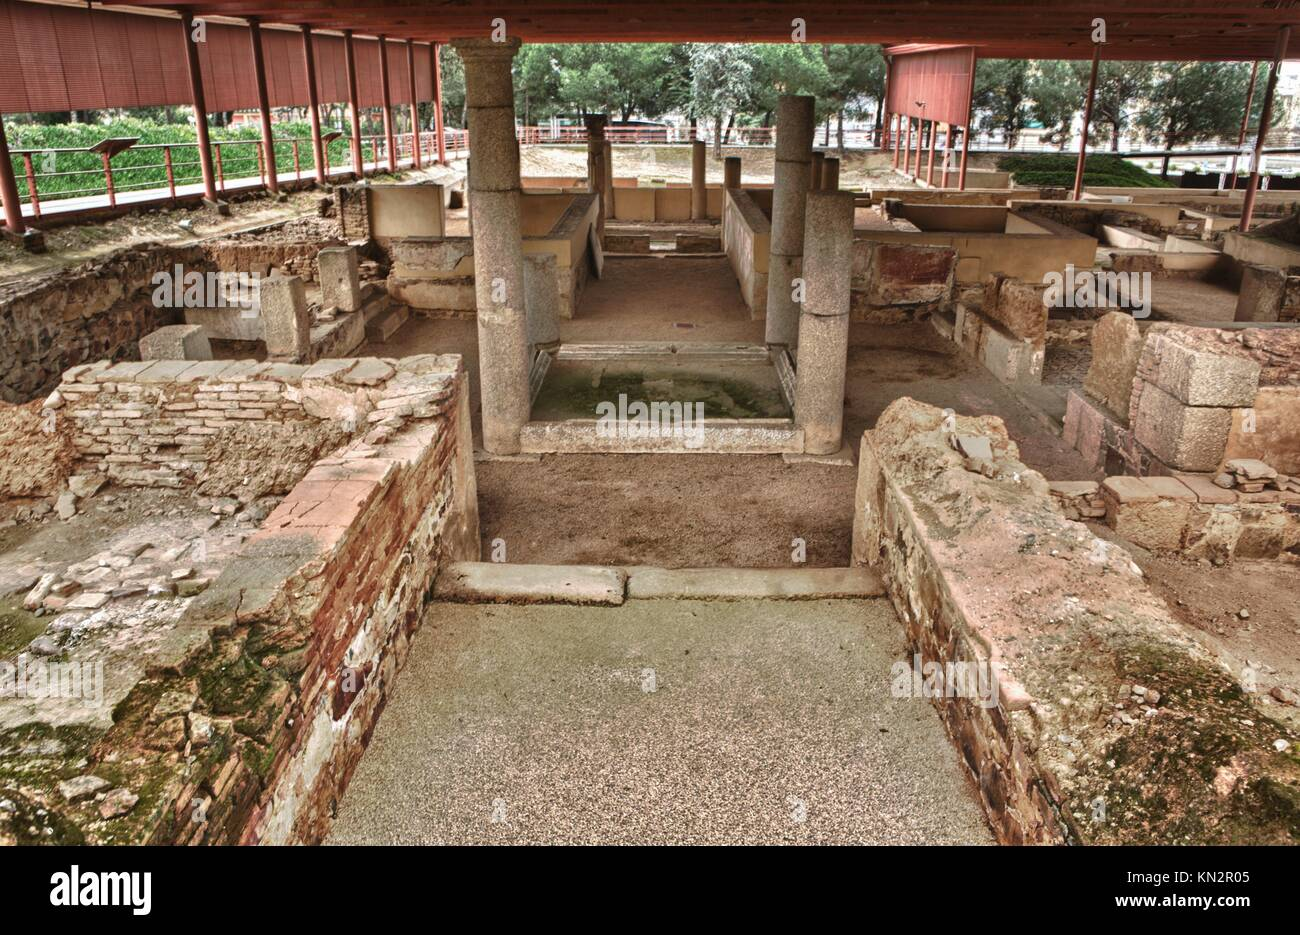 Lobby And Atrium of Mithraeum house, Merida, Spain - Stock Image